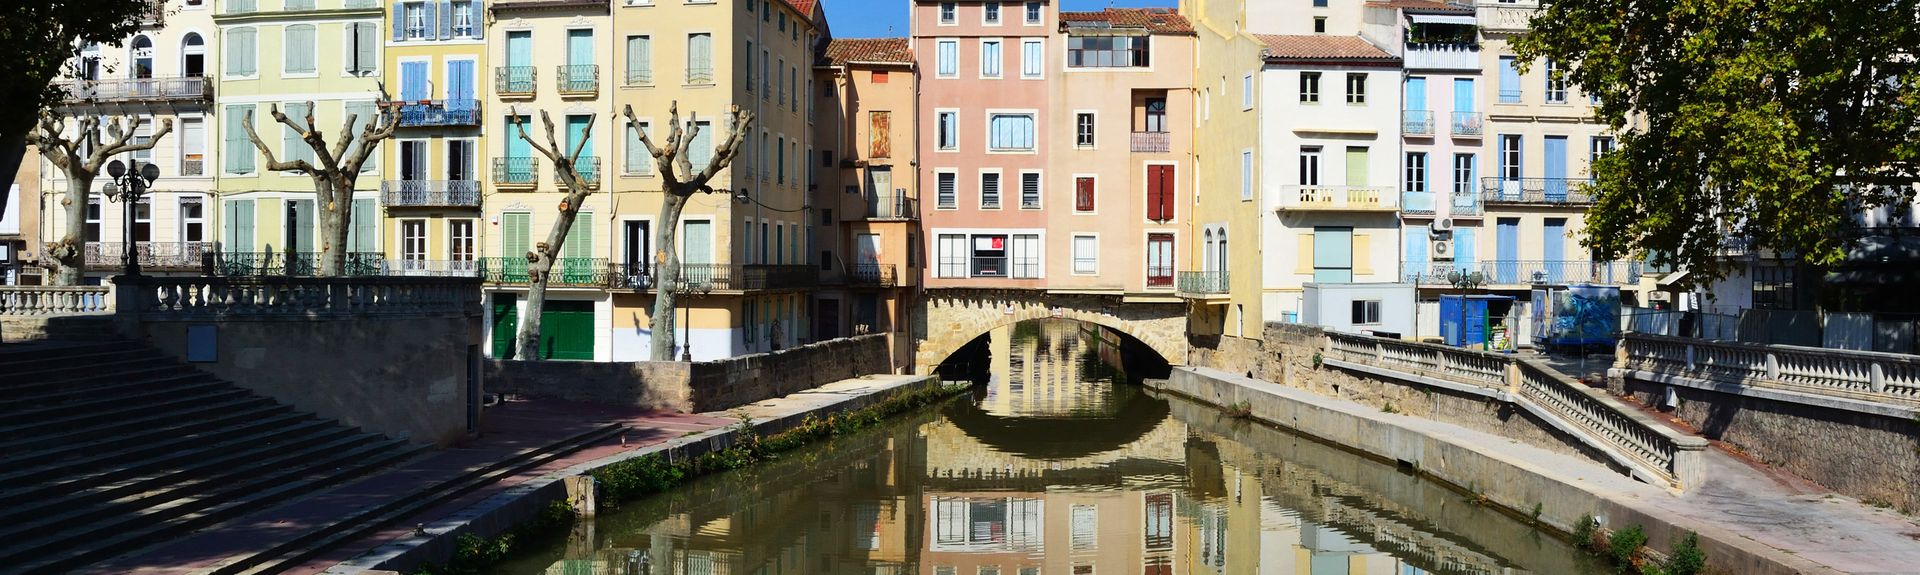 Narbonne, Aude (department), France